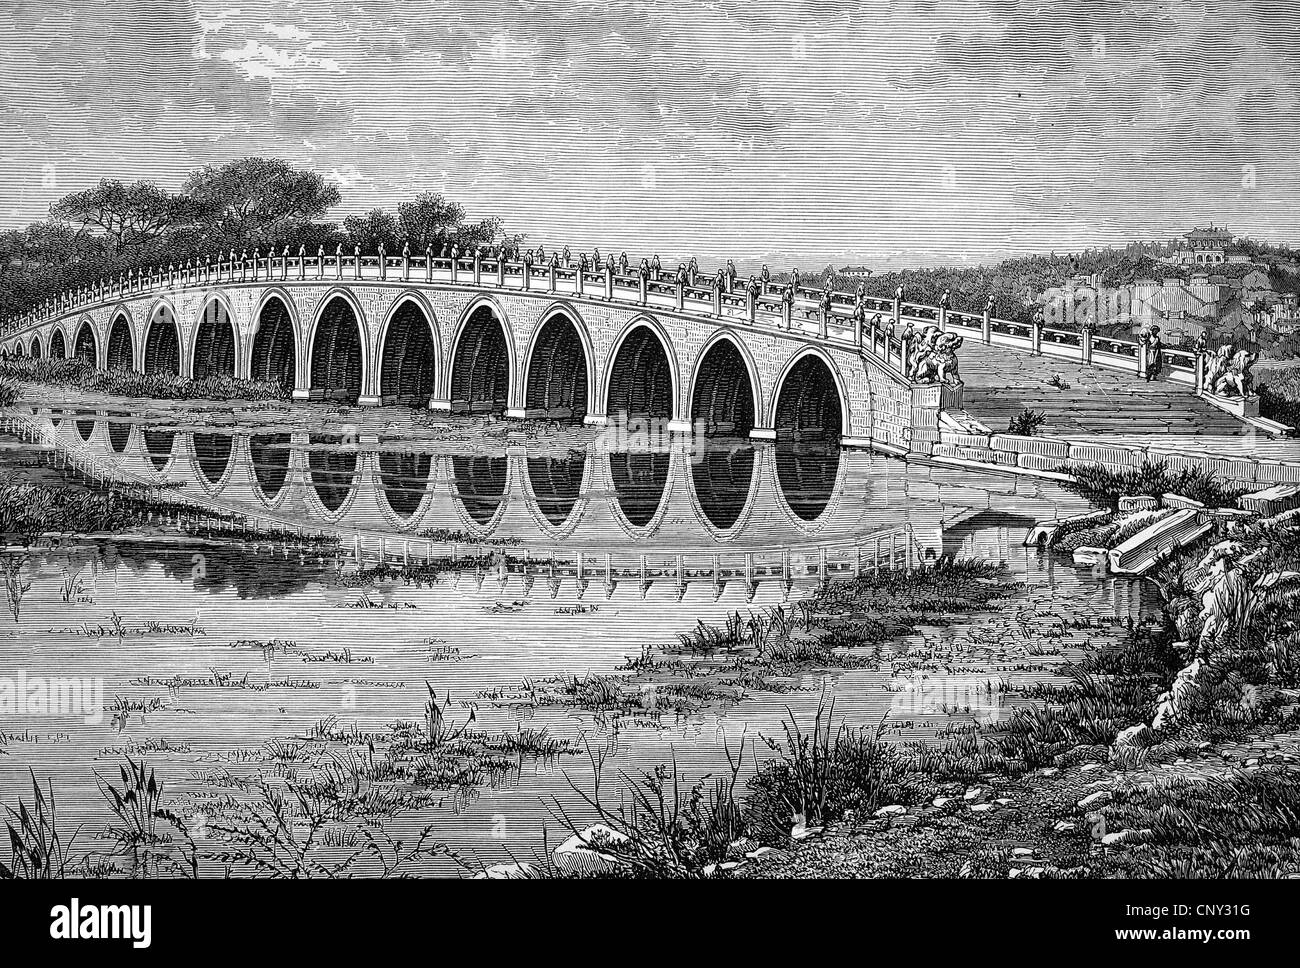 Marble Bridge of Seventeen Arches leading to the island in the lake of Onane-Cheon-Chane, China, historical illustration, - Stock Image